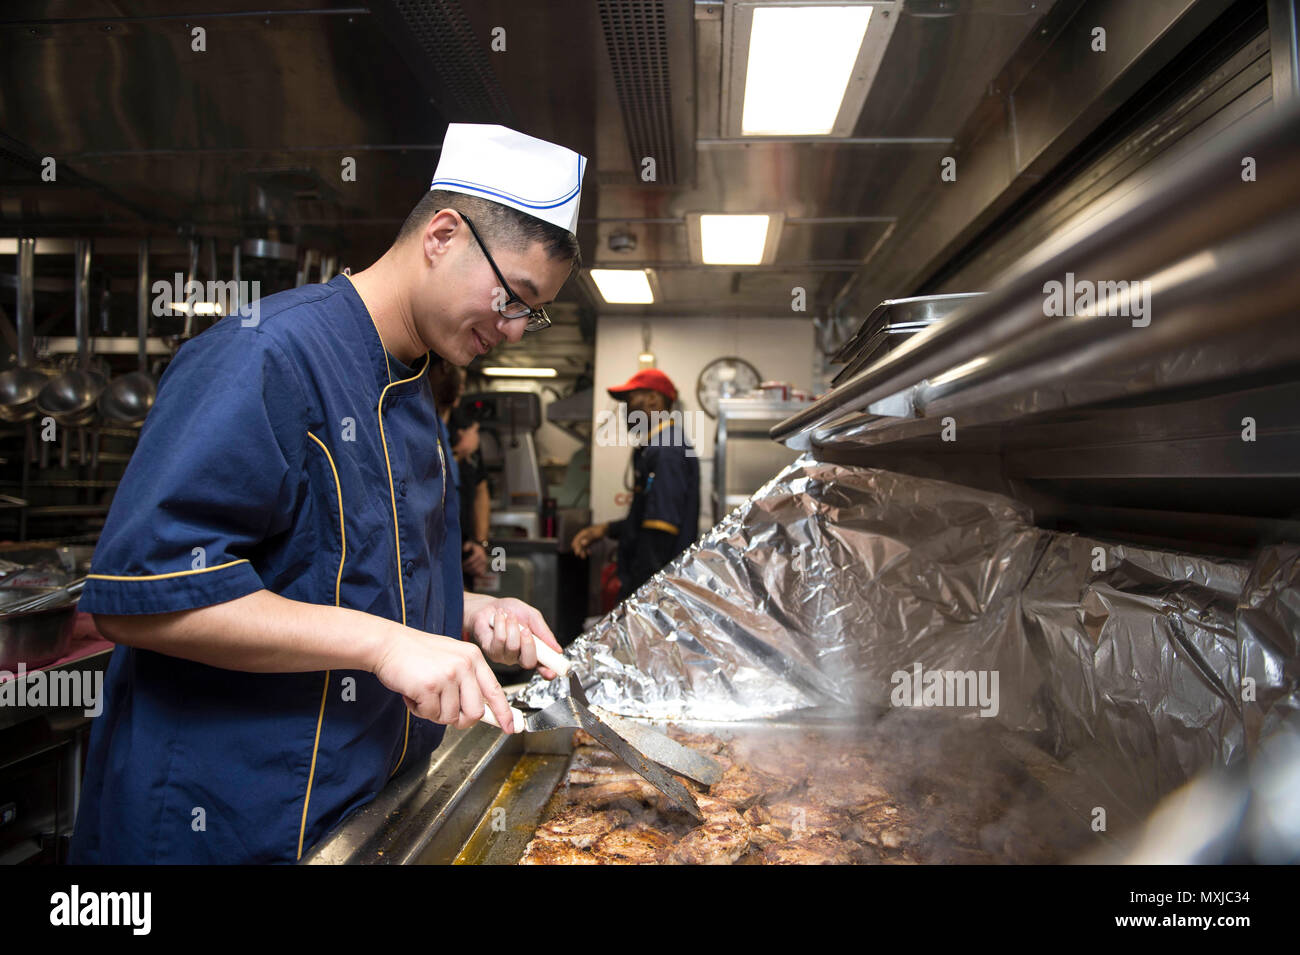 161107-N-XQ474-016 PHILIPPINE SEA (Nov. 7, 2016) Seaman Hing Leung Tsang cooks pork chops in the galley aboard the Ticonderoga-class guided-missile cruiser USS Chancellorsville (CG 62). Chancellorsville is on patrol in the Philippine Sea with Carrier Strike Group Five (CSG 5) supporting security and stability in the Indo-Asia-Pacific region. (U.S. Navy photo by Petty Officer 2nd Class Andrew Schneider/Released) - Stock Image